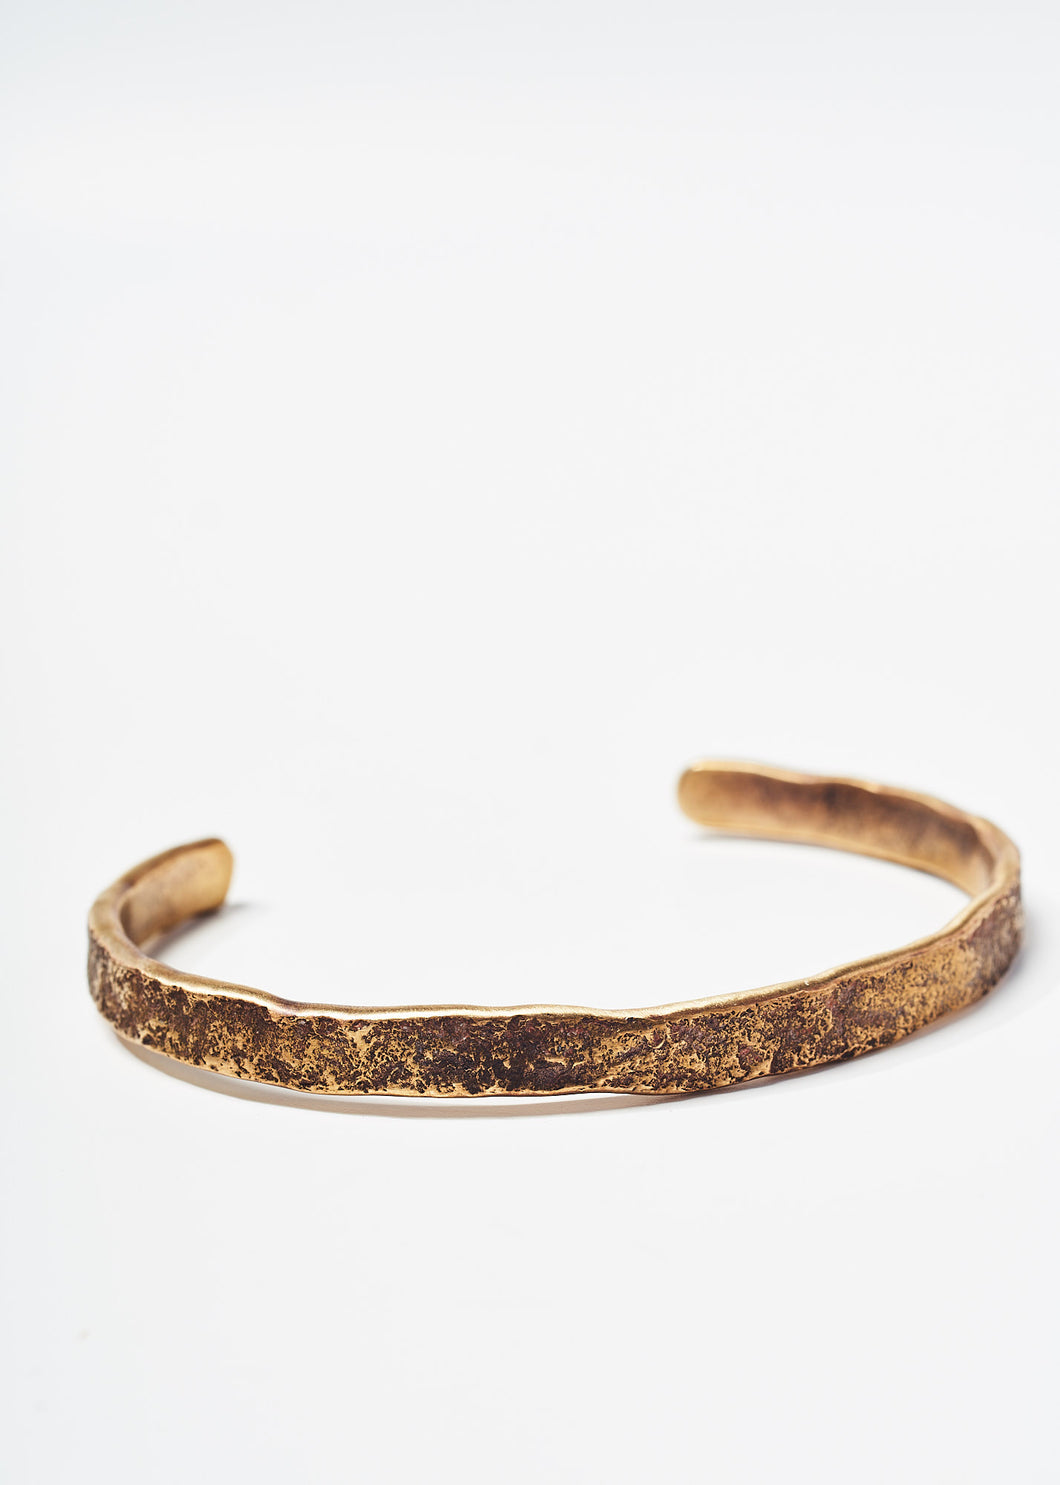 Oxidized Brass Cuff